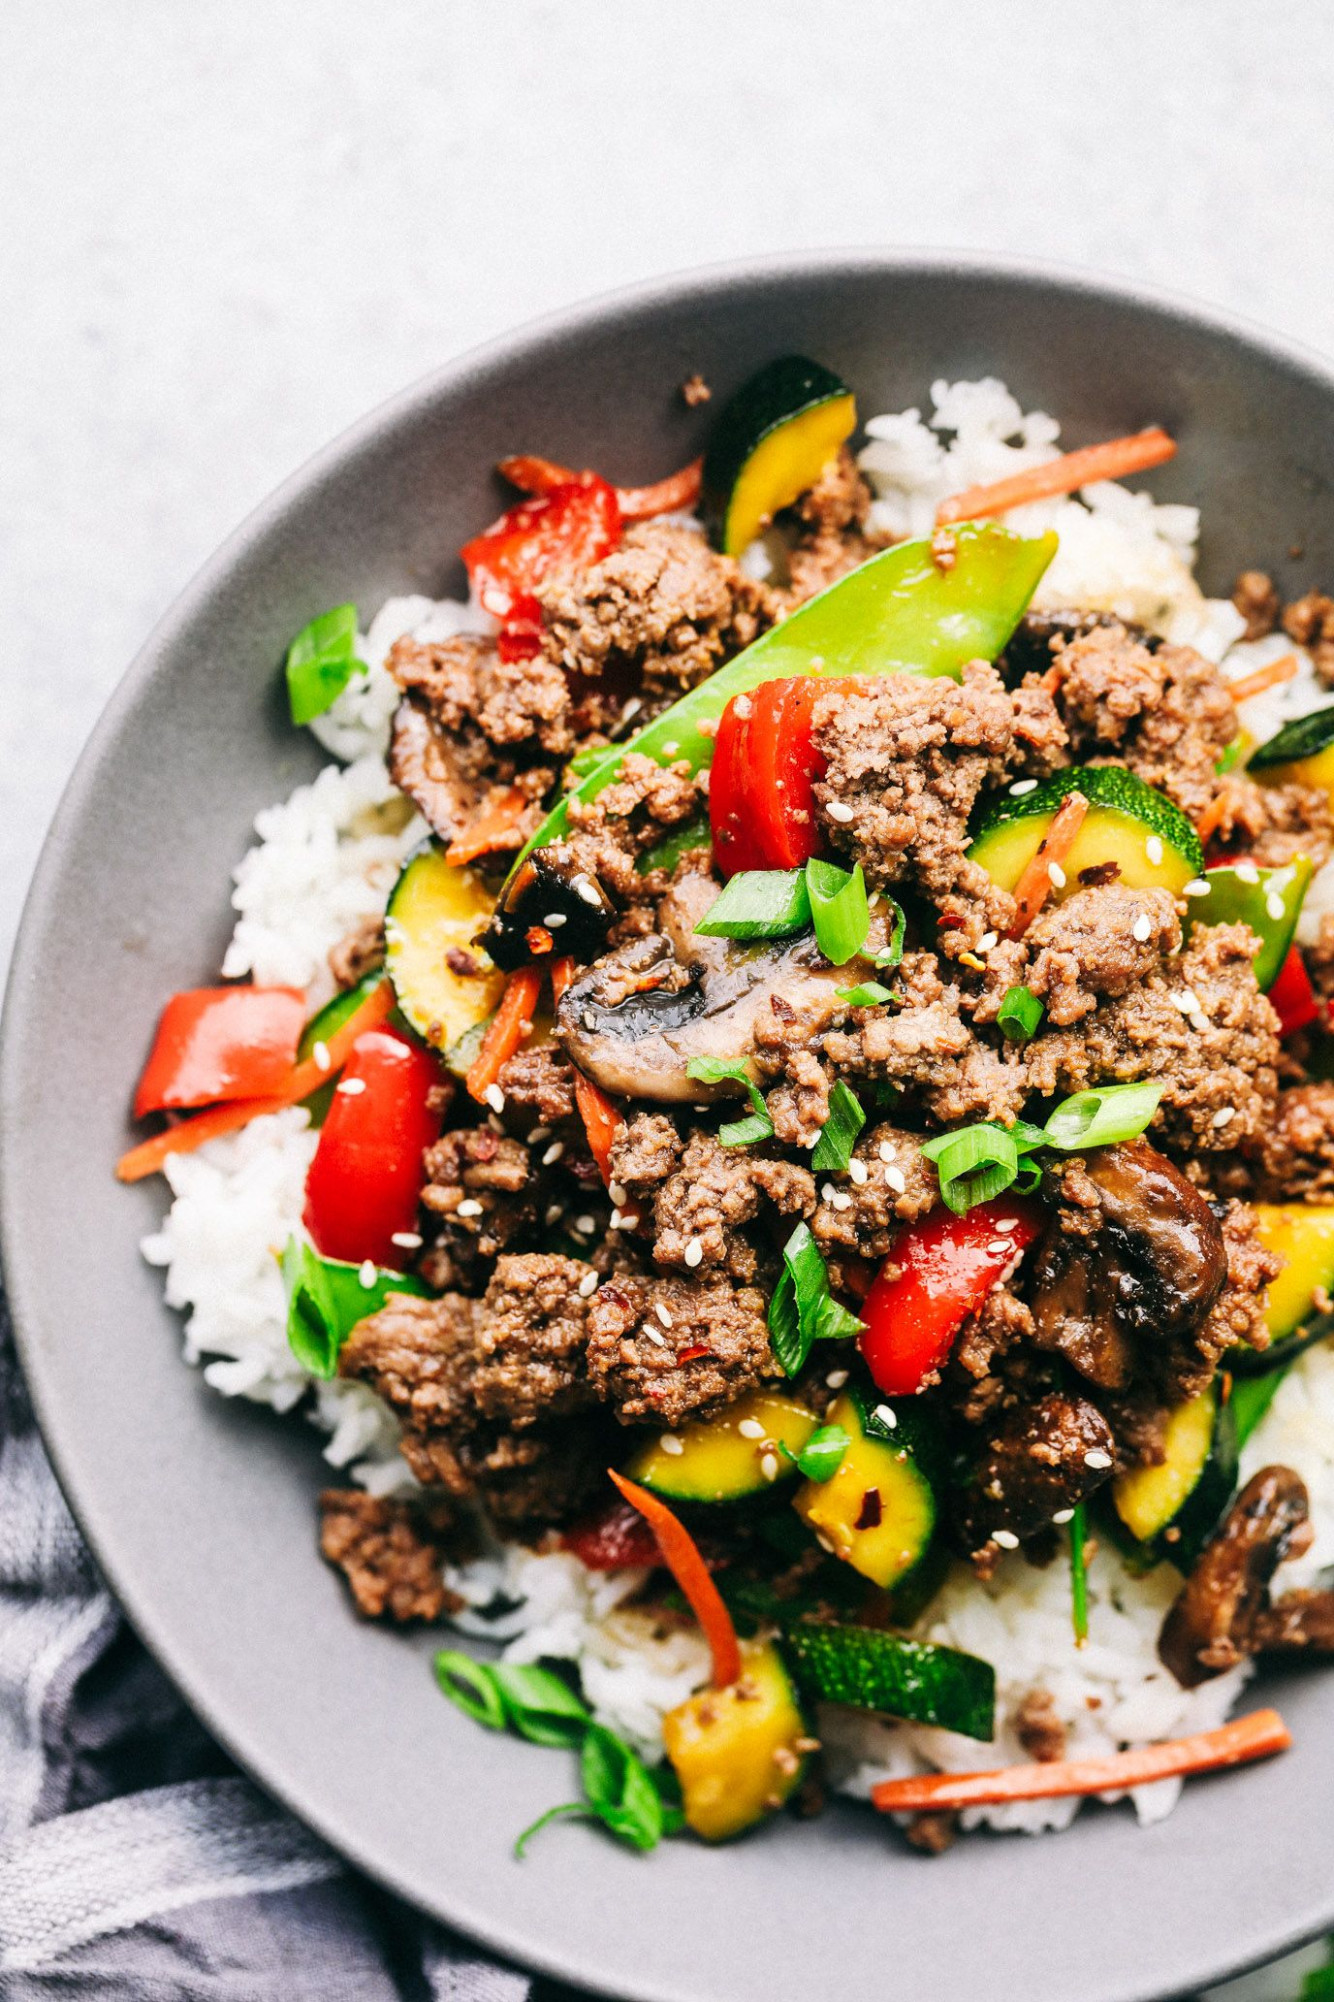 13 Easy Ground Beef Recipes - Best Dinner Ideas With Ground Beef - Healthy Ground Beef Recipes Quick Easy